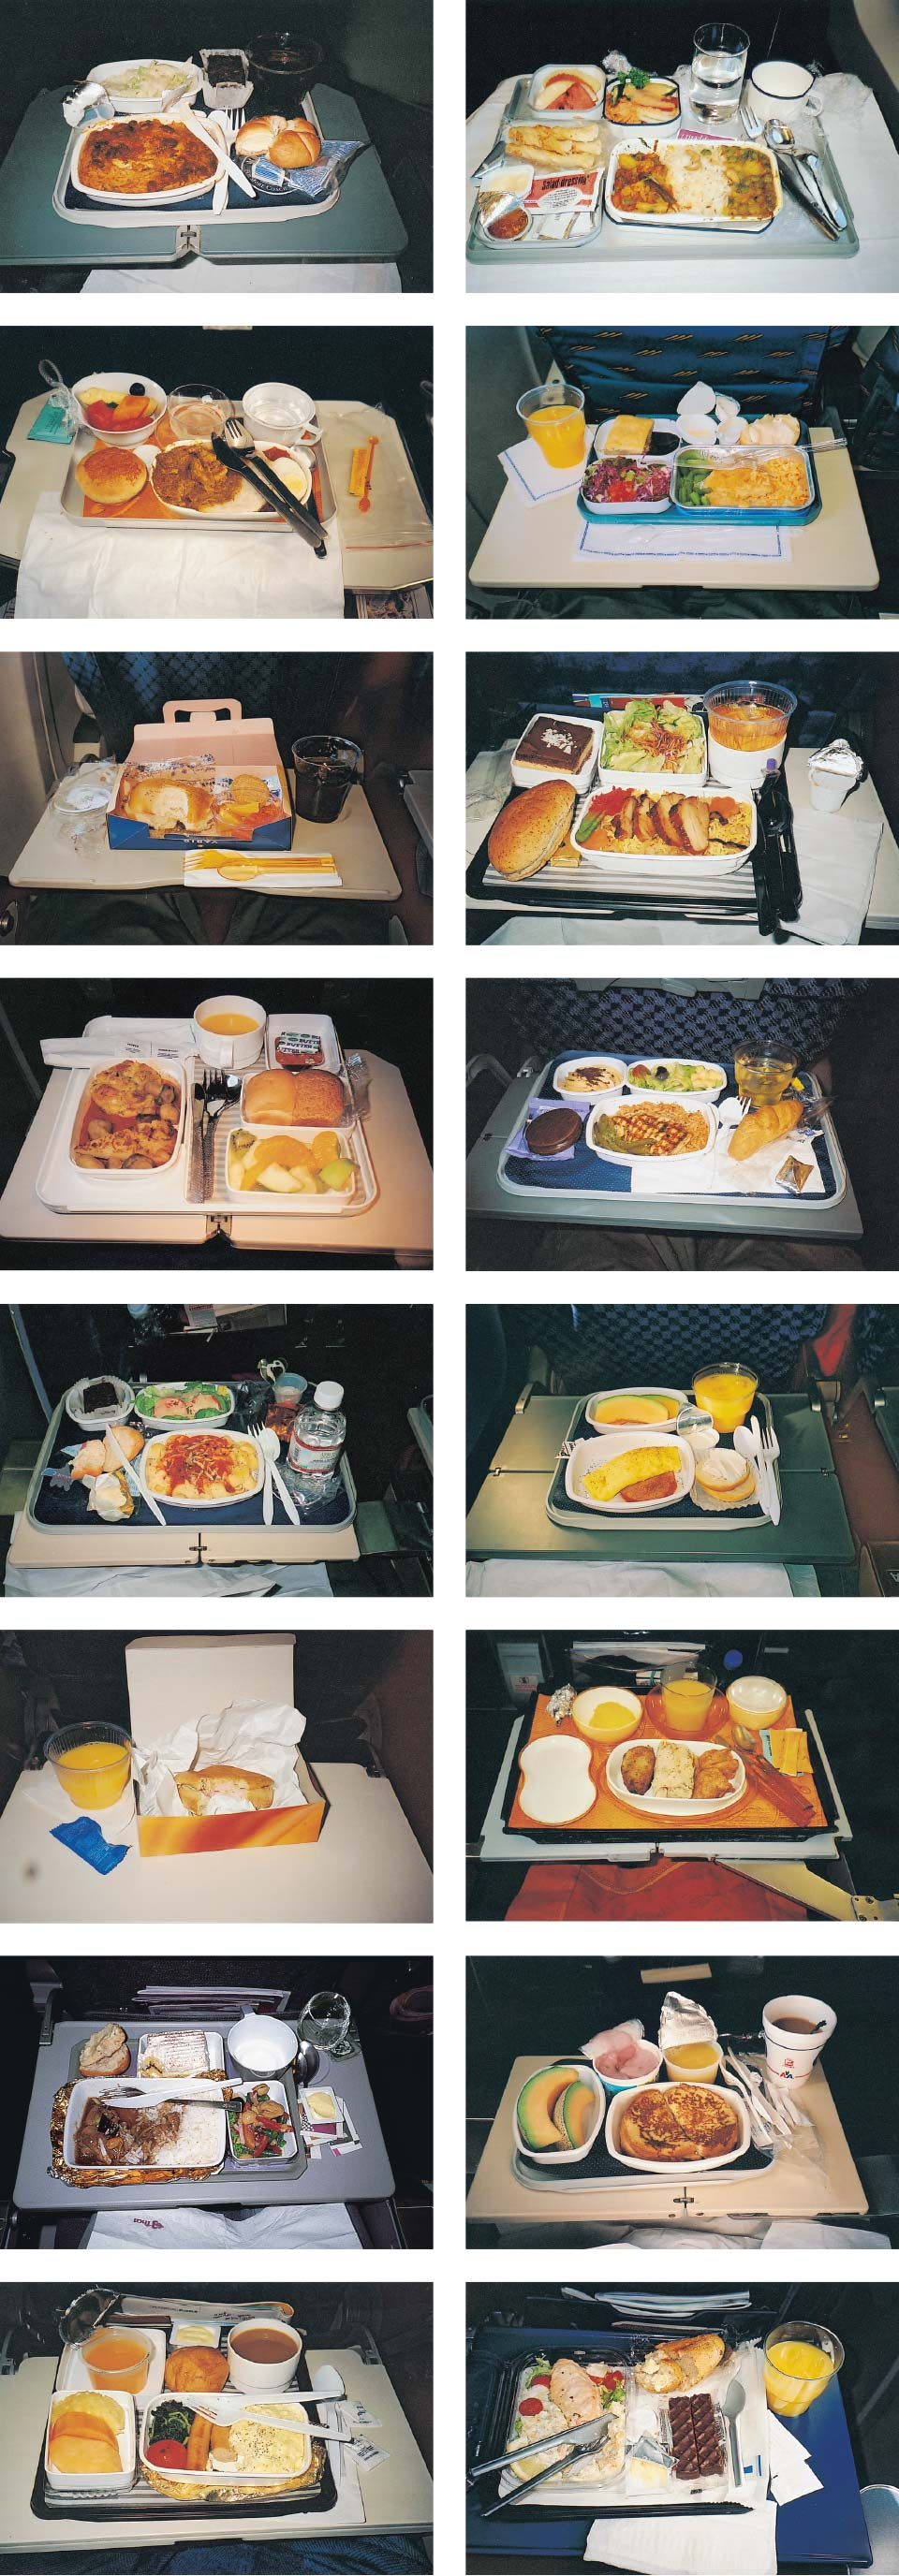 AirlineMeals_960_01.jpg